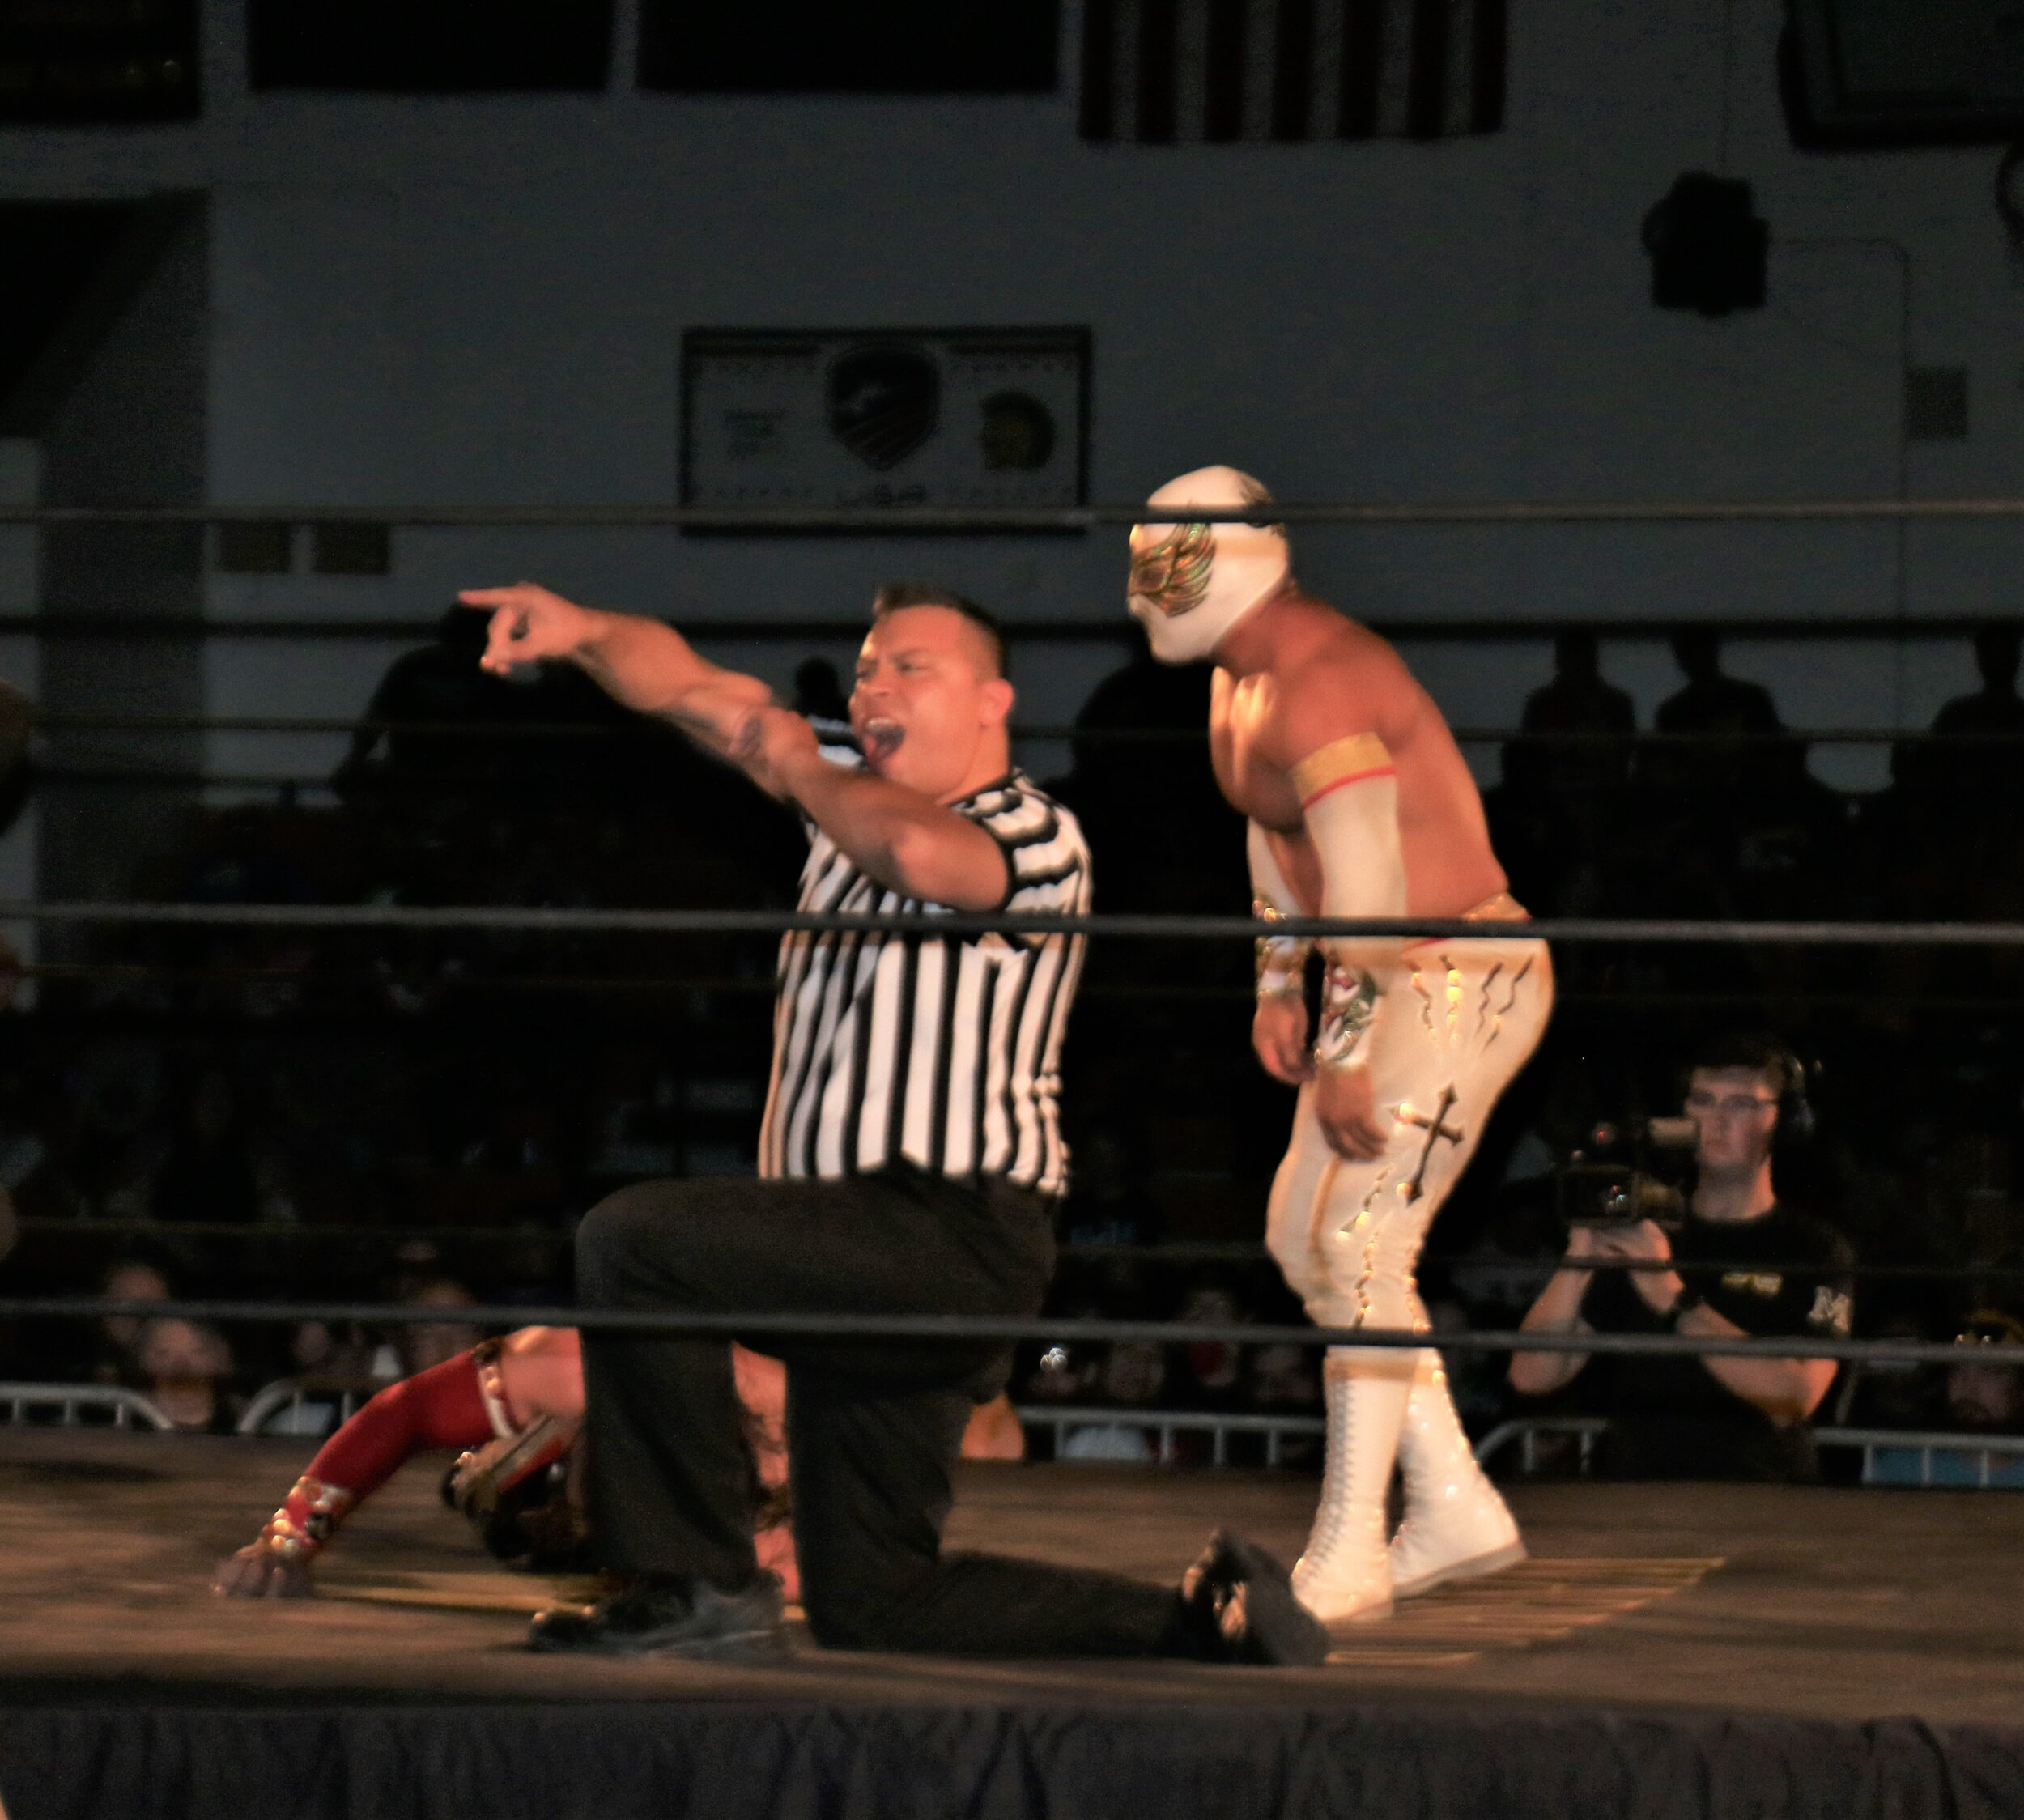 Referee Jeremy Tillema calls for the bell after Caristico earned the submission victory in the 3-way match.